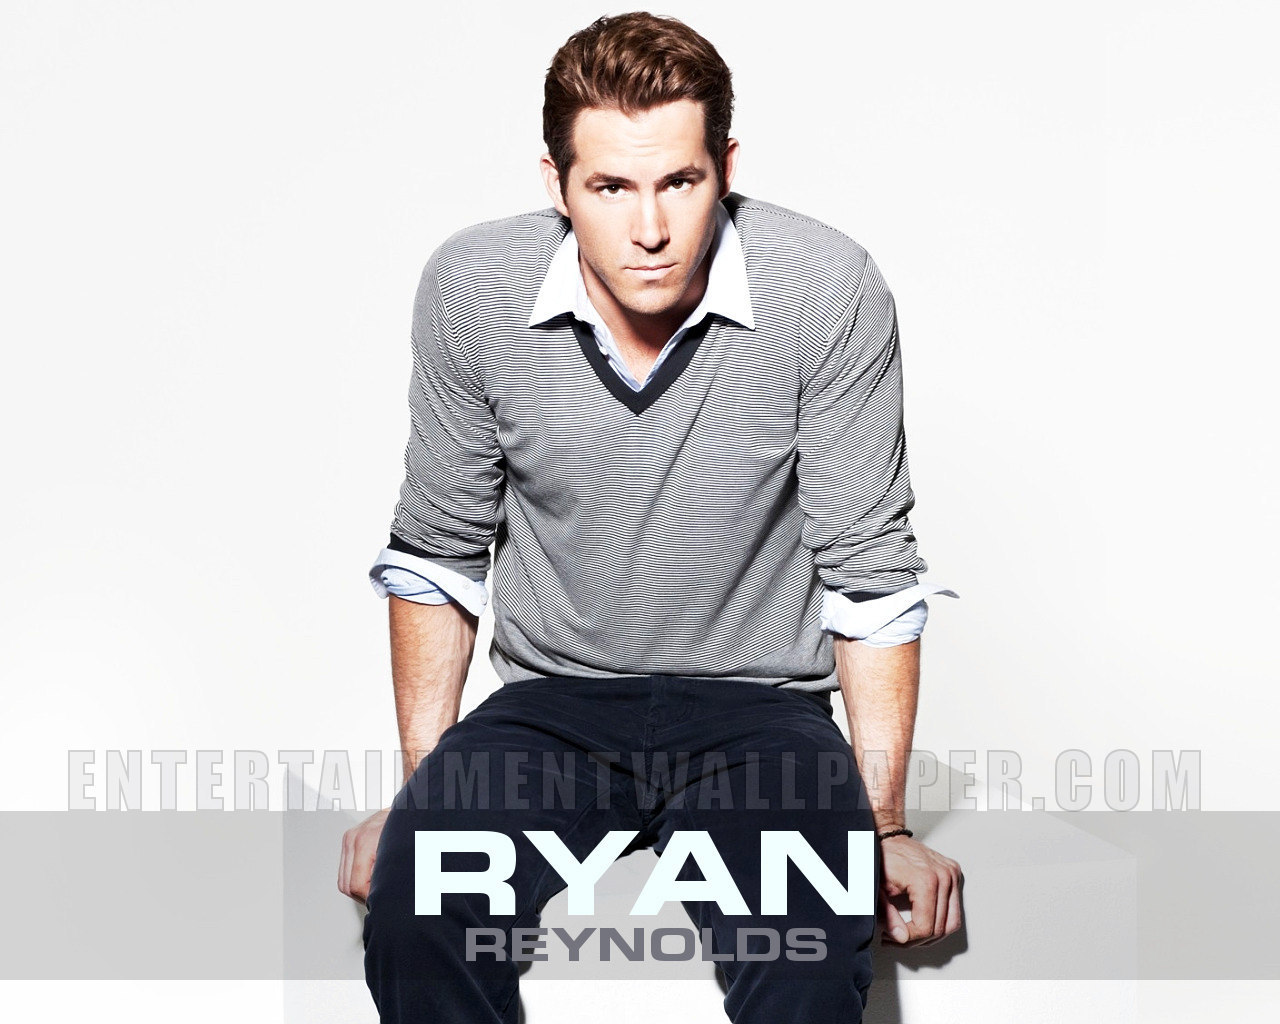 Ryan Reynolds - Ryan Reynolds Wallpaper (15764588) - Fanpop